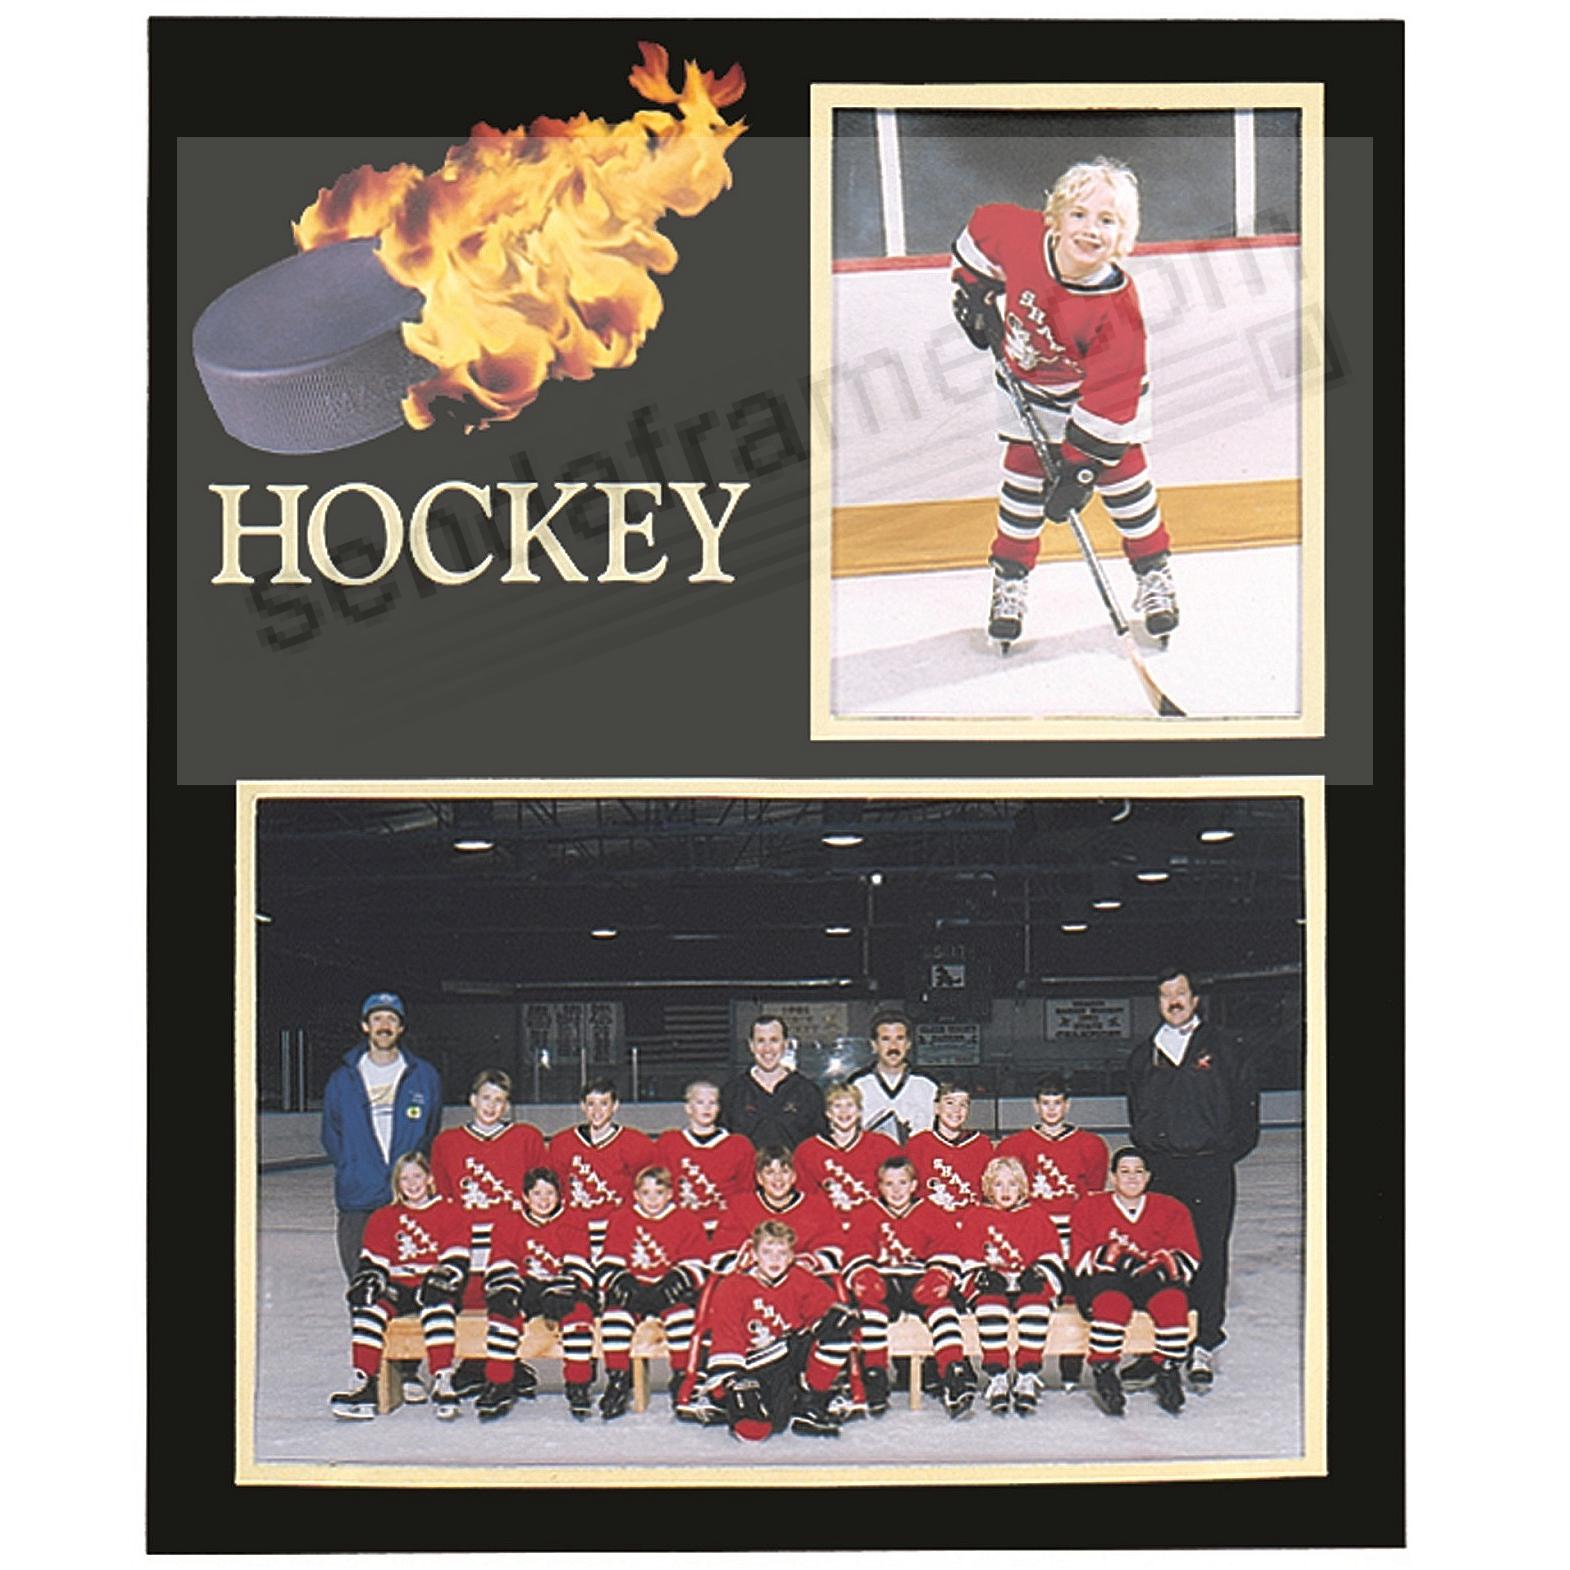 Hockey Player/Team 7x5/3½x5 MEMORY MATES cardstock double photo frame (sold in 10's)